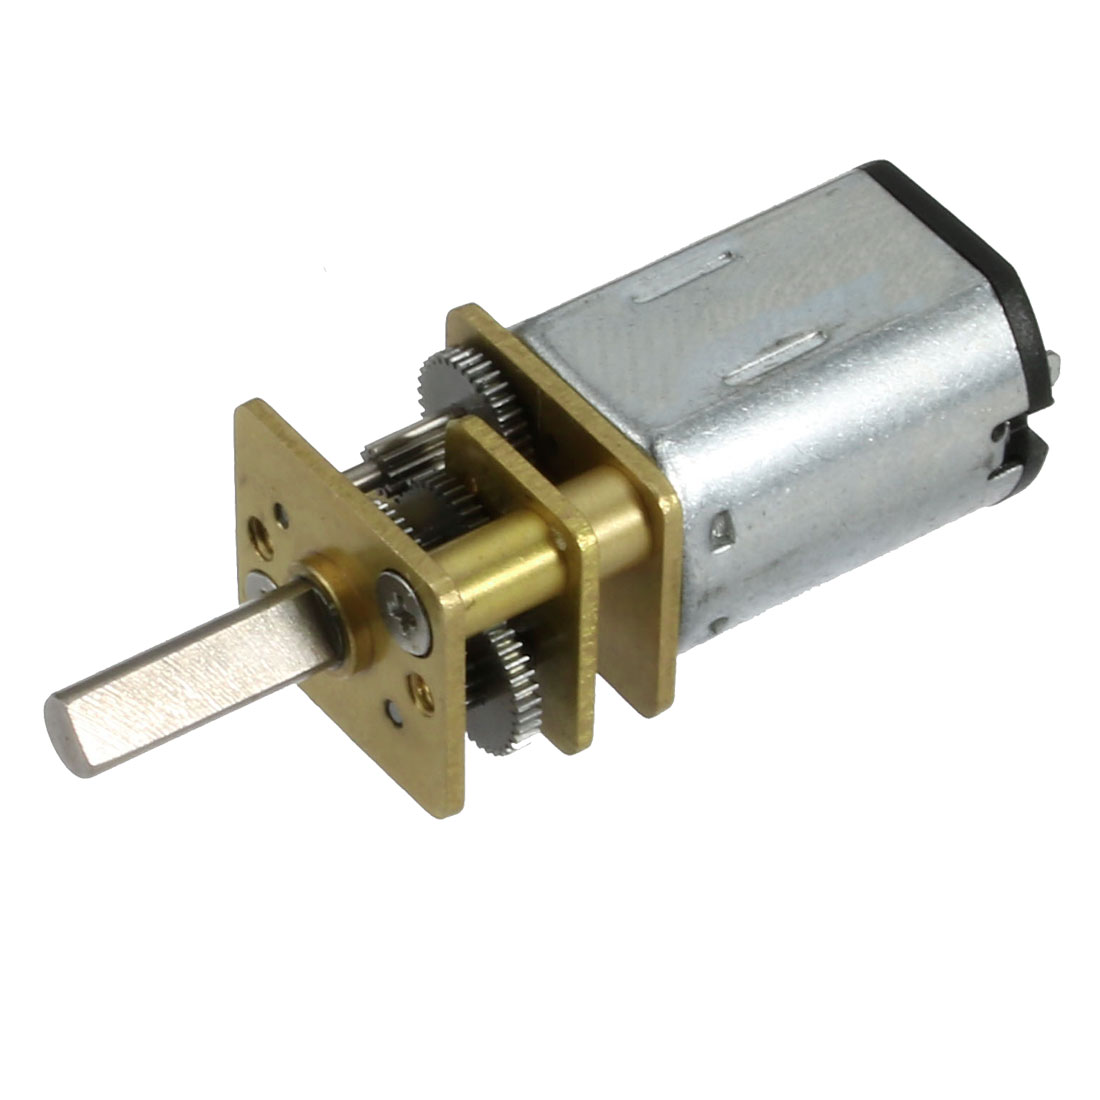 DC 3V 100RPM Micro Gear Box Speed Reduction Motor Electric Geared Motor